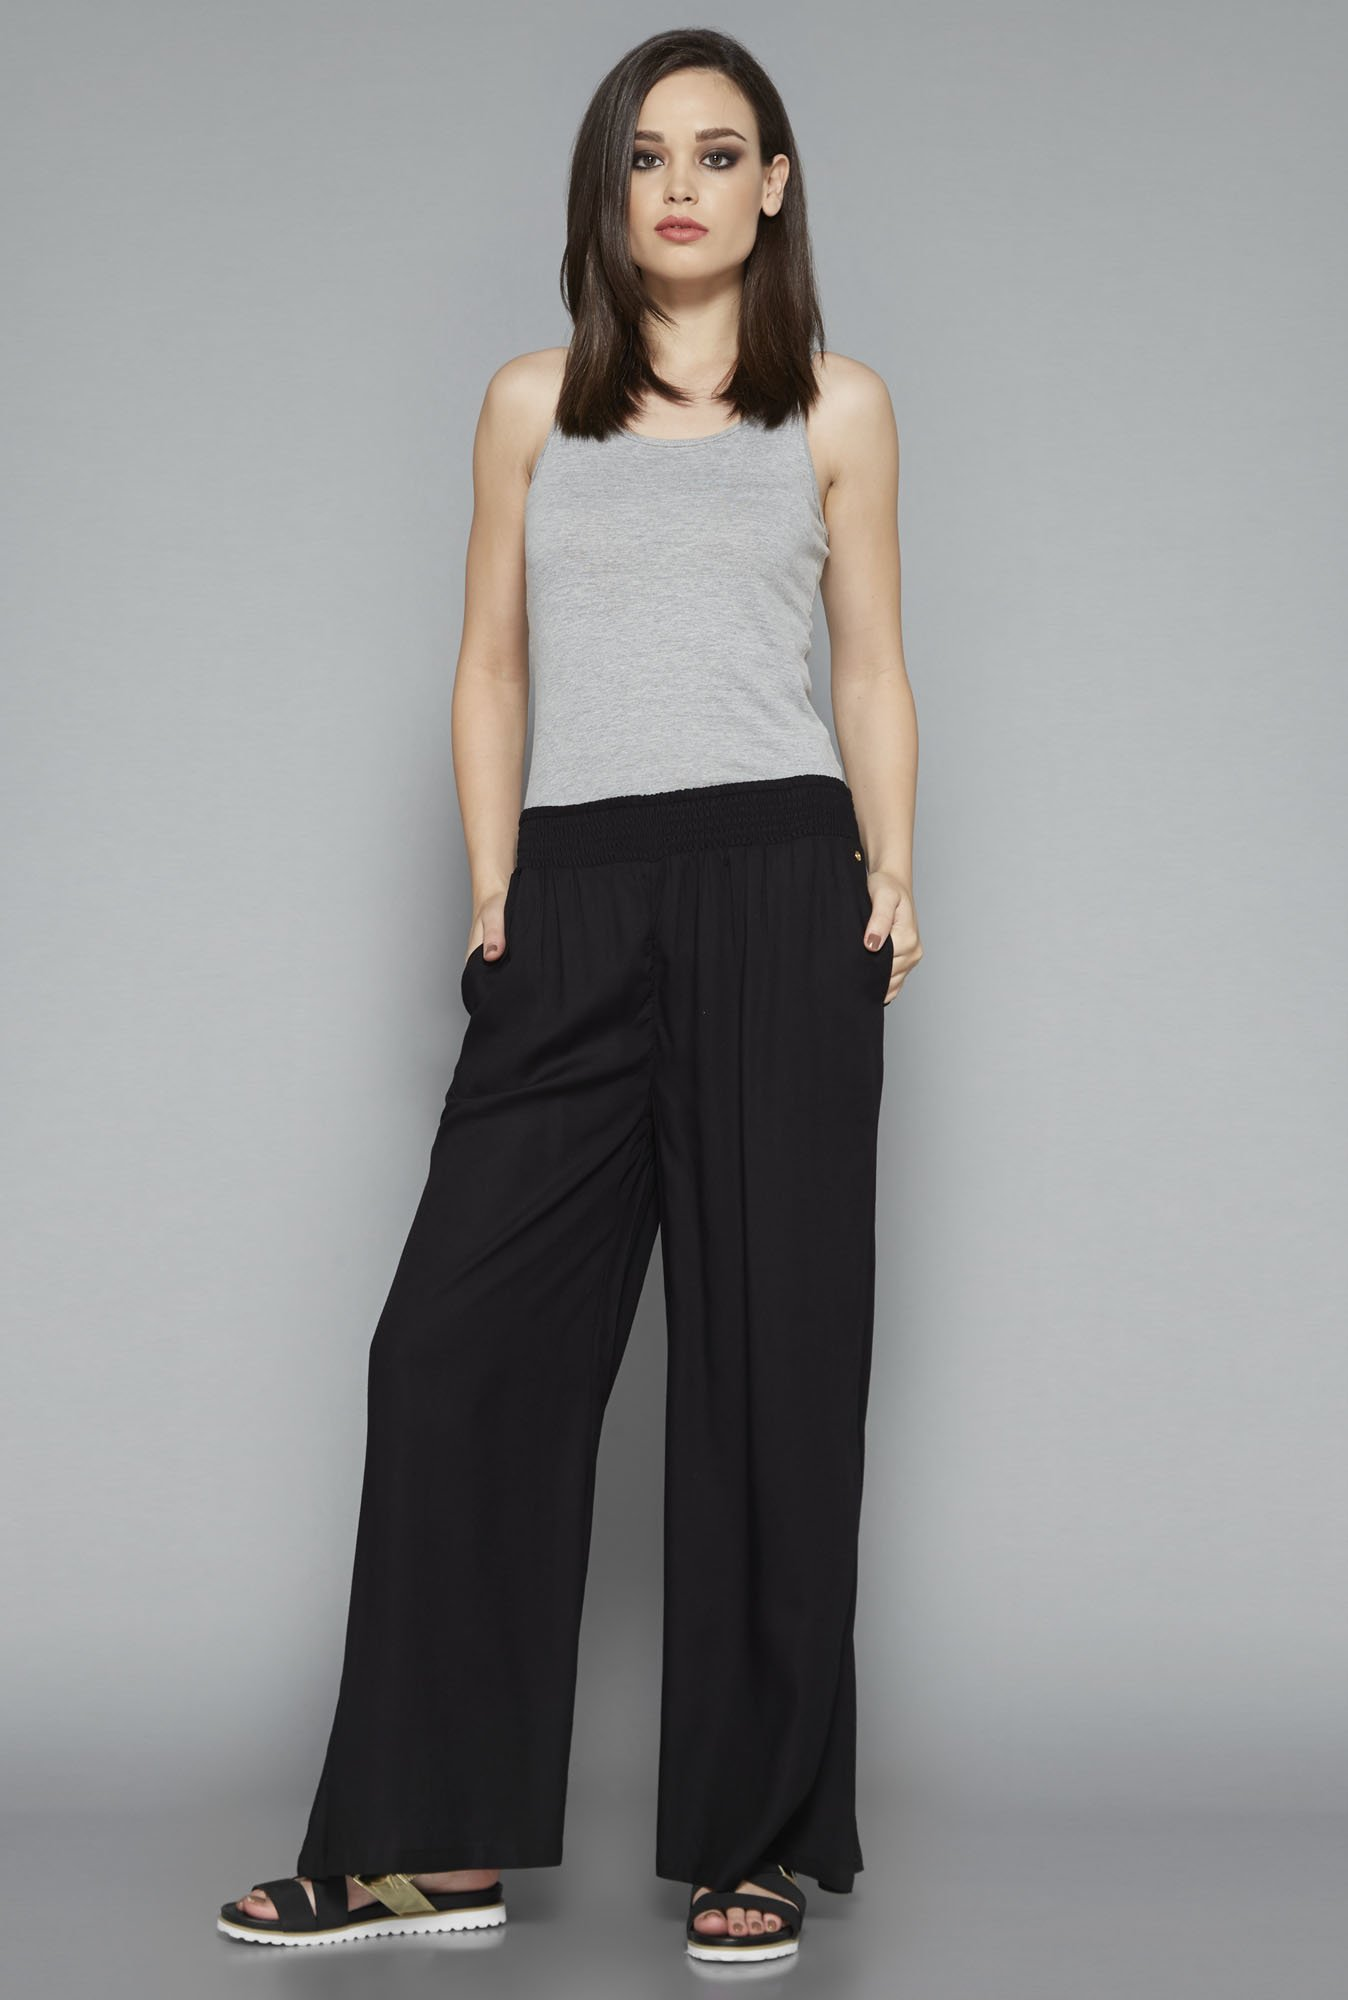 Nuon Black Solid Pant